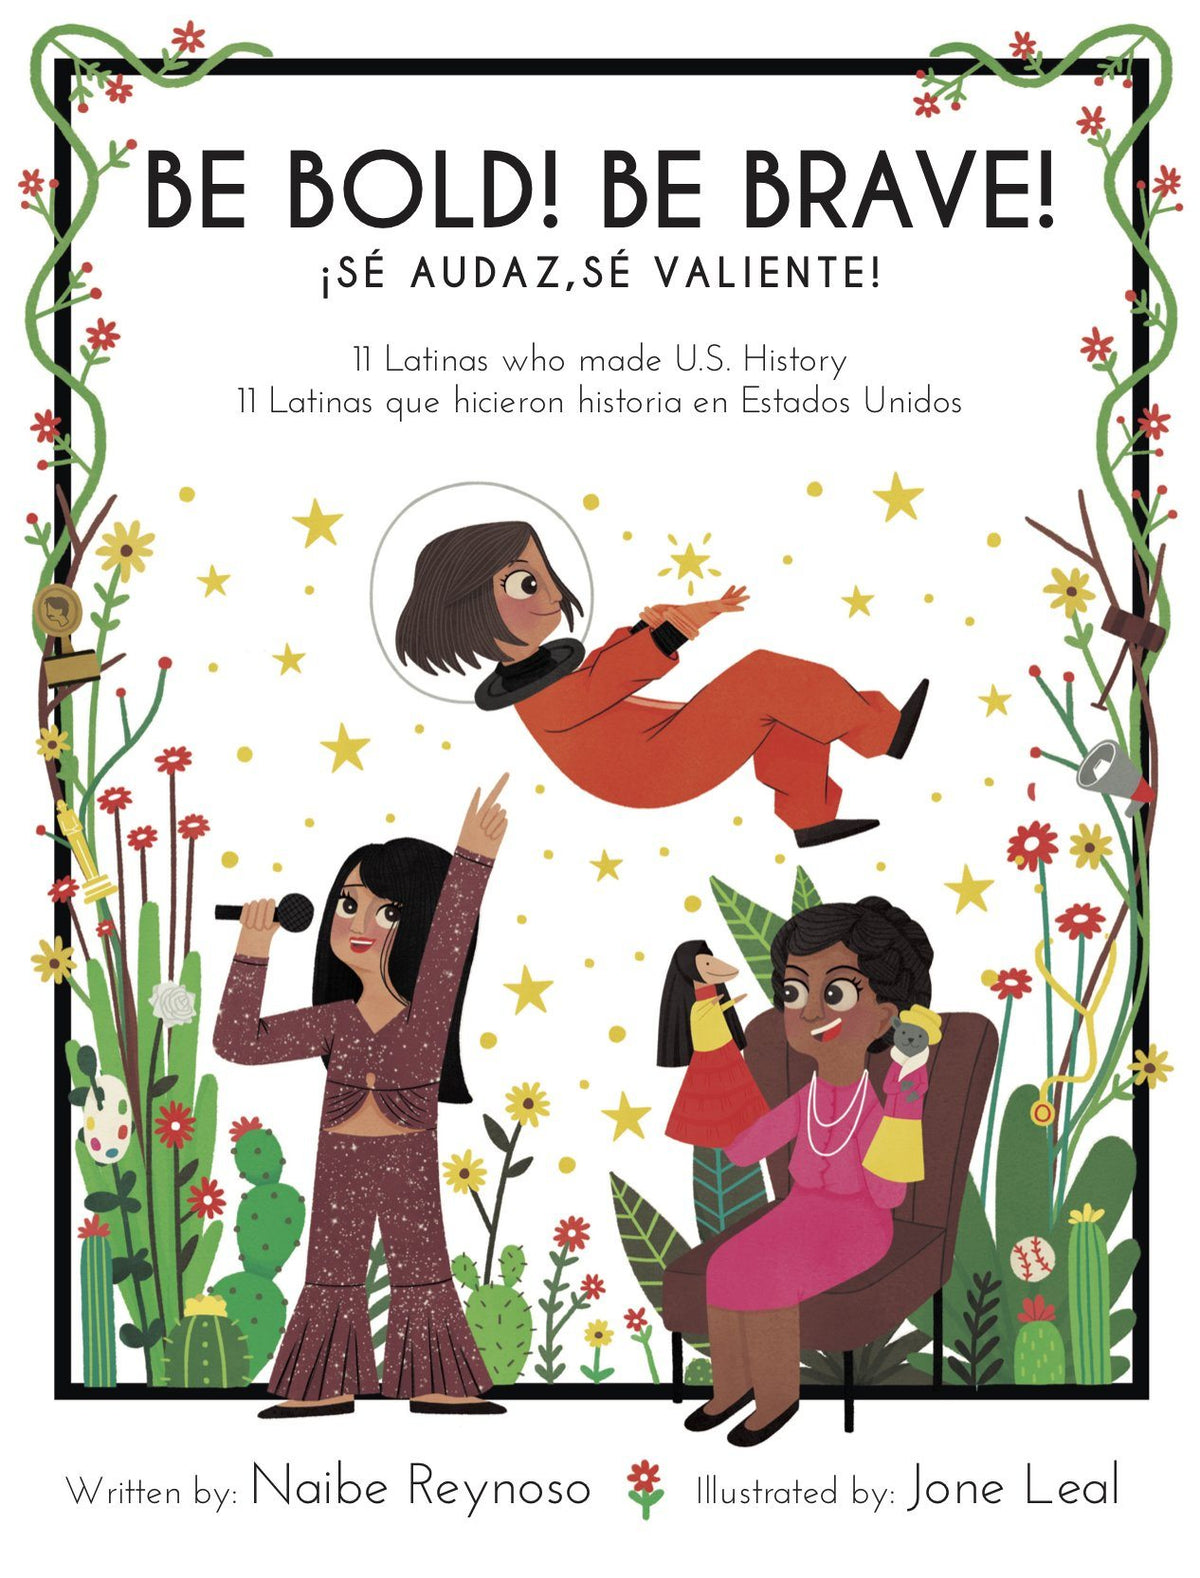 Be Bold! Be Brave! 11 Latinas who made U.S. History-Booklandia-bilingual-spanish-childrens-books